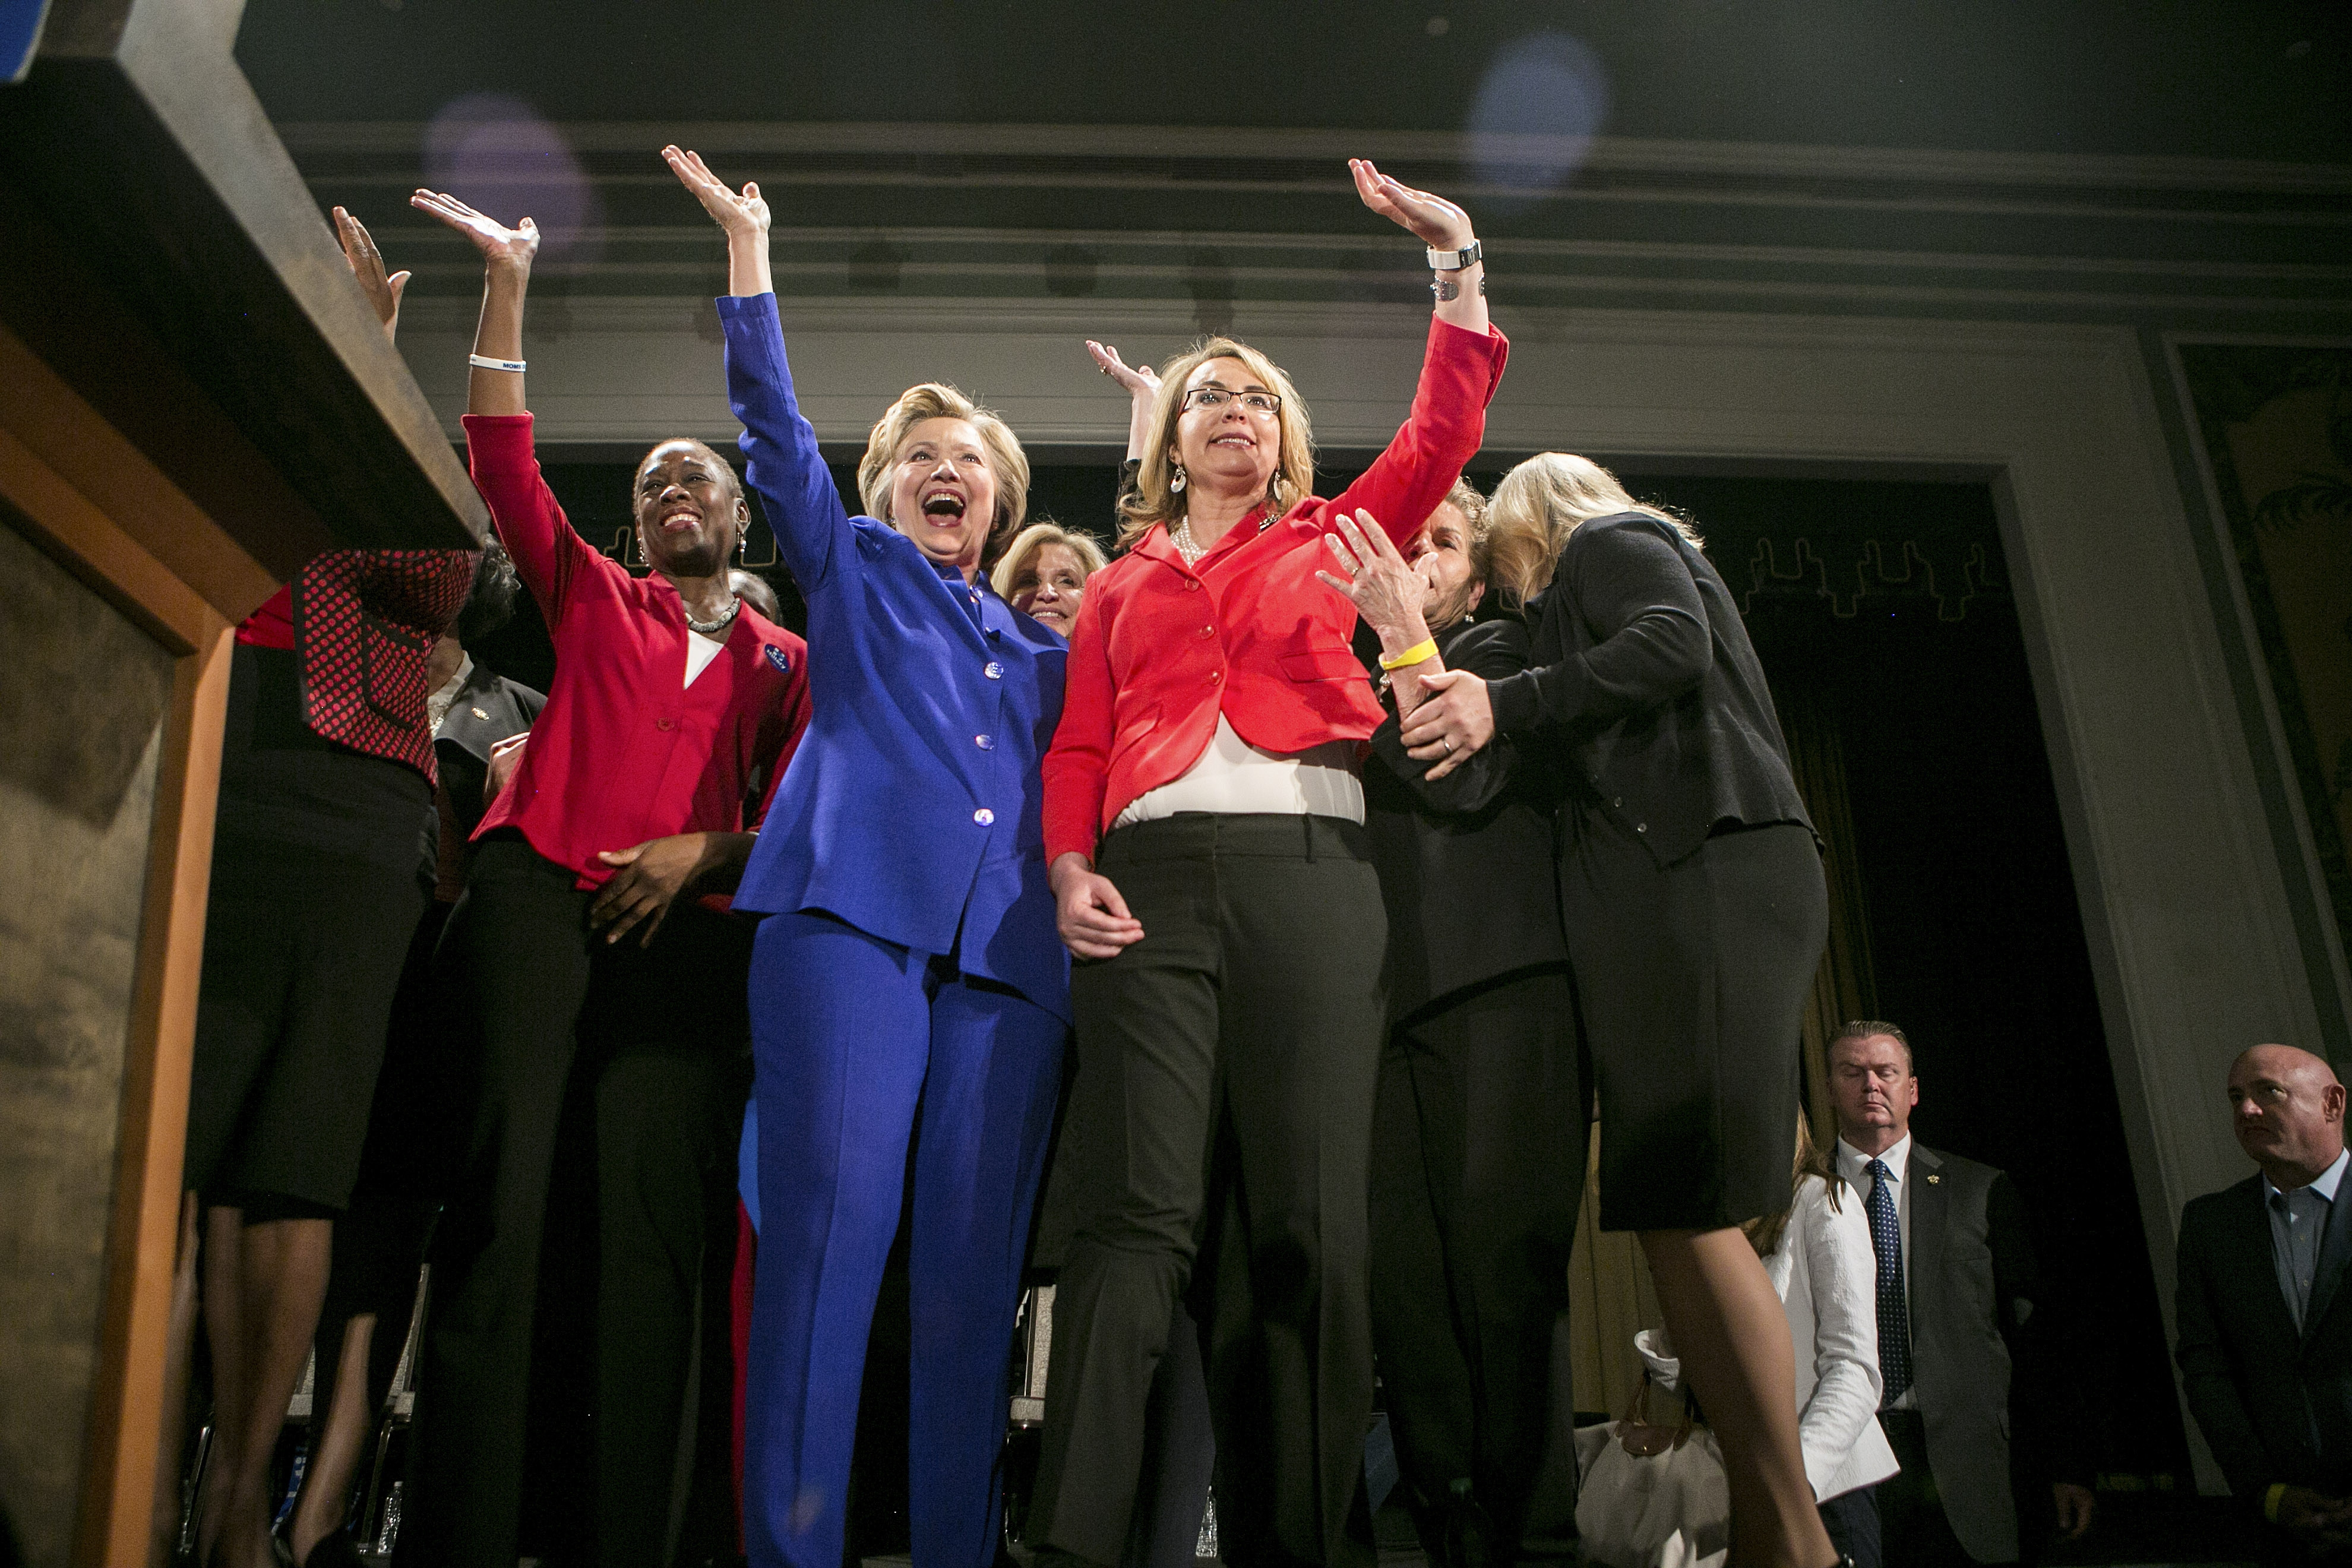 Rep. Gabrielle Giffords, right, came to support Hillary Clinton at an emotional rally that focused in part on gun laws Monday at the Hilton Hotel banquet hall in midtown Manhattan.